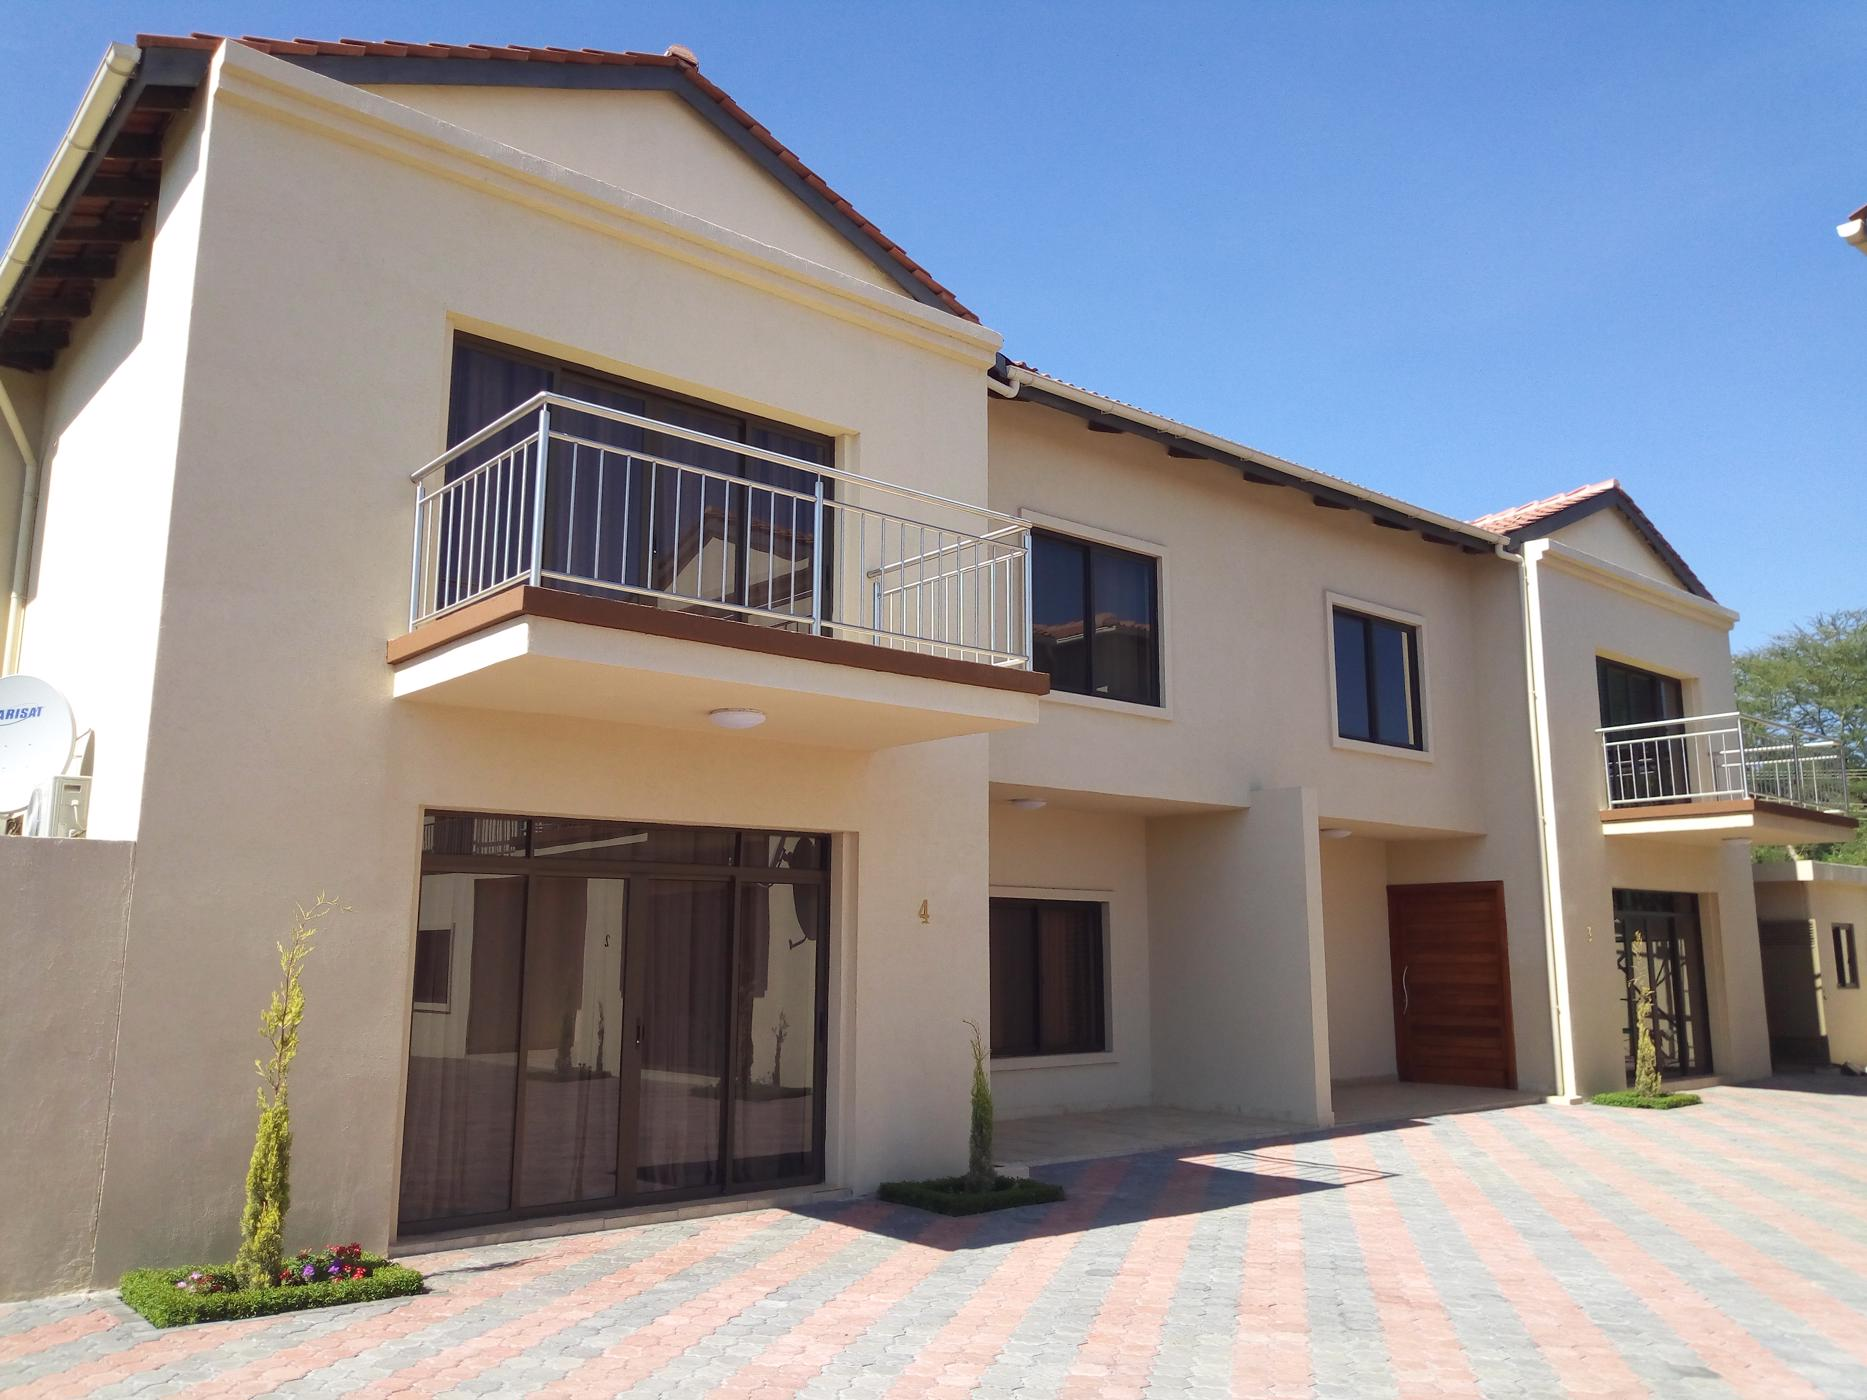 https://listing.pamgolding.co.za/images/properties/201904/1107035/H/1107035_H_15.jpg